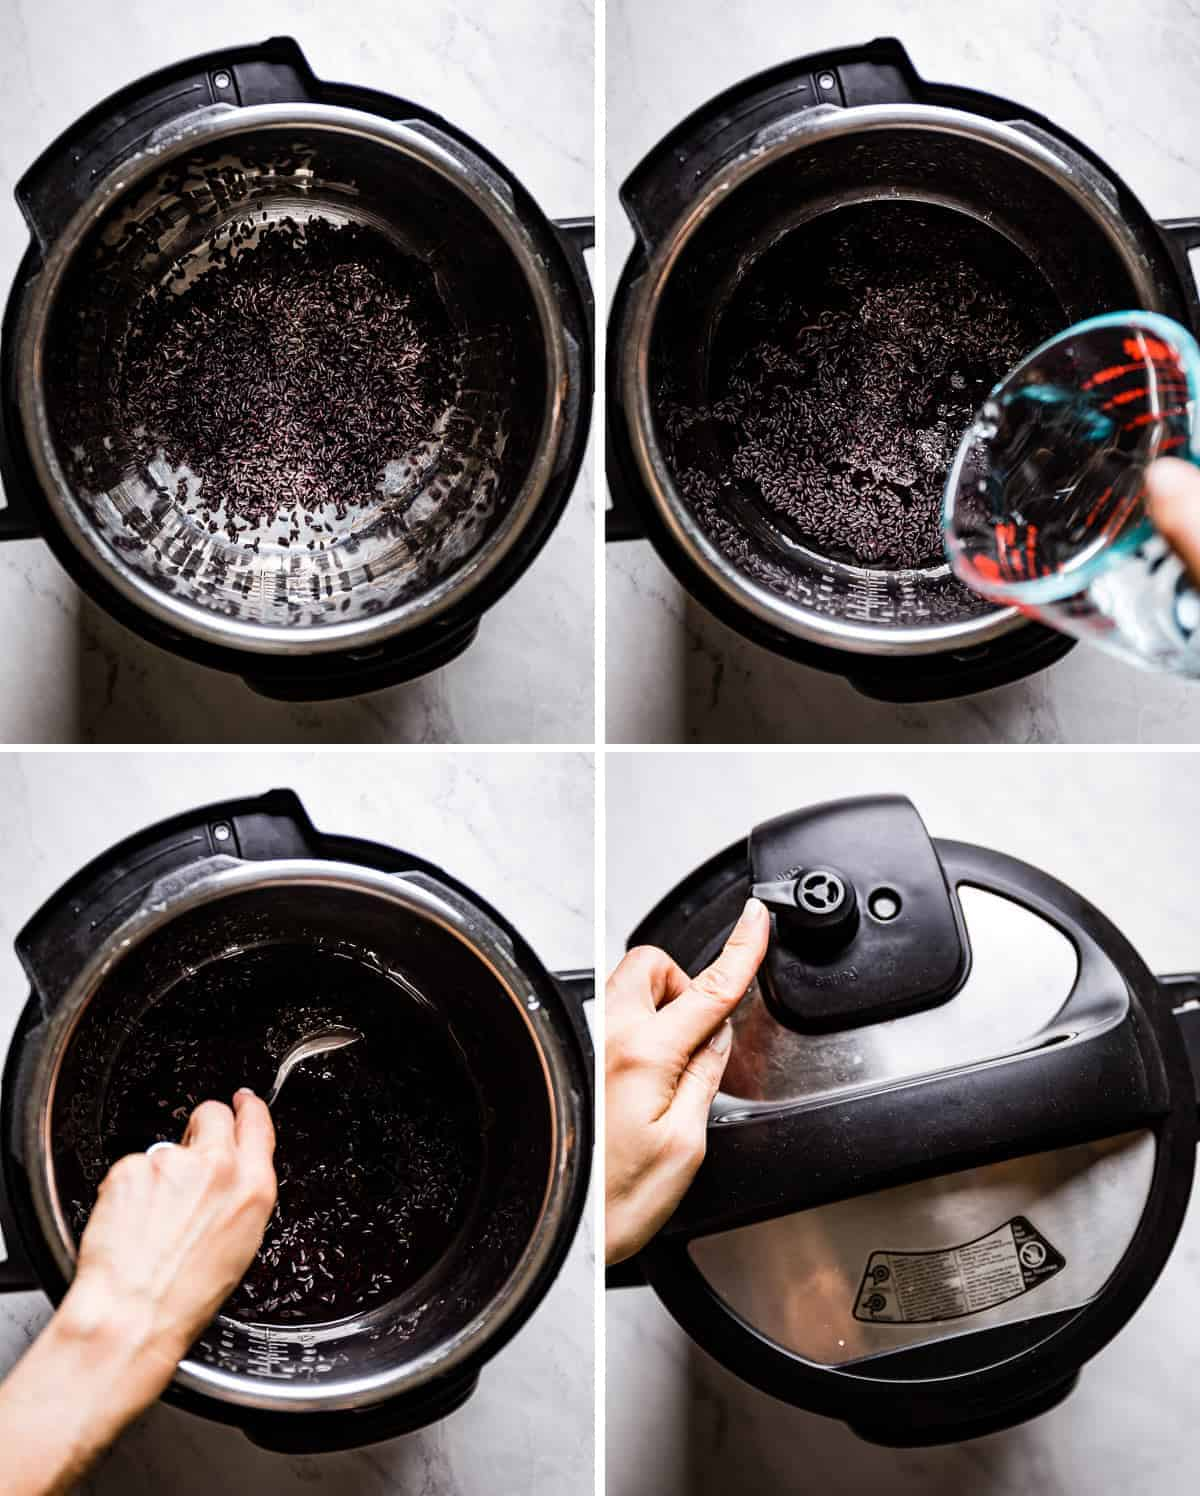 Person showing steps of cooking black japonica rice in a pressure cooker in four how to photos.